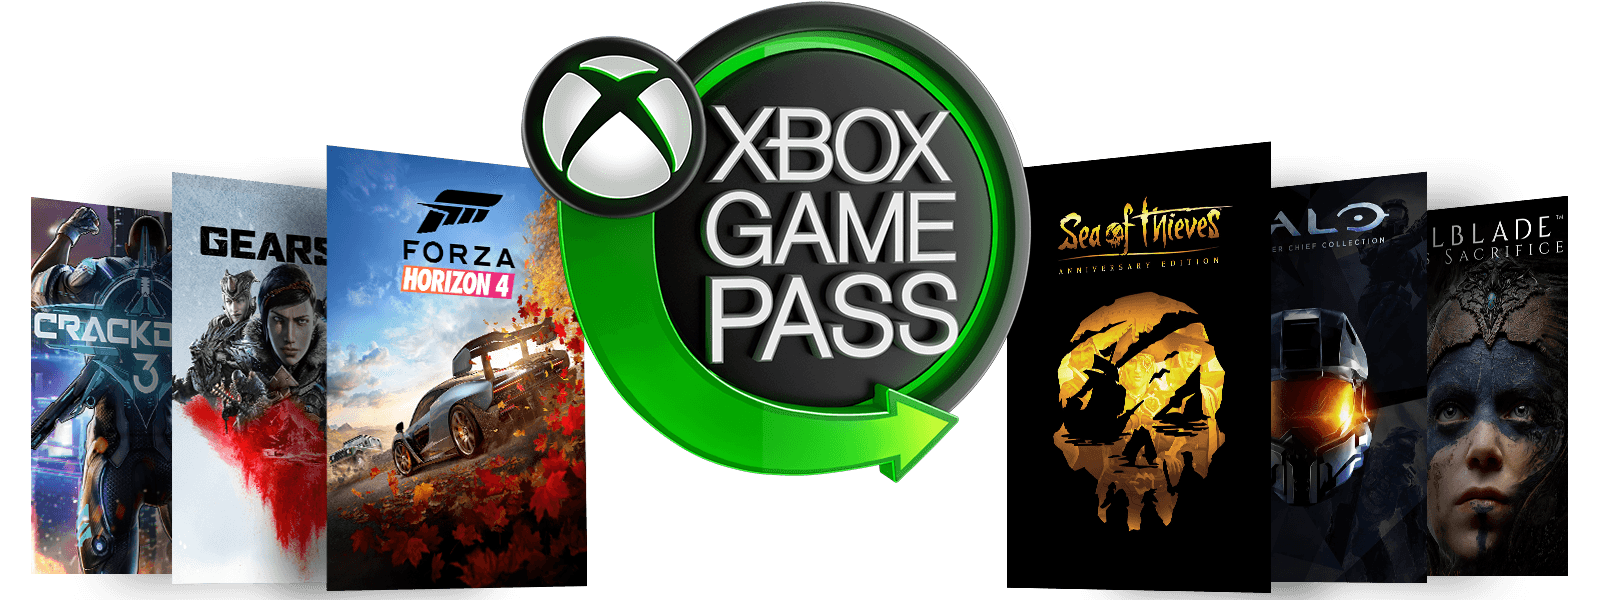 Sea of Thieves、PLAYERUNKNOWNS Battleground、Forza Horizon 4、Crackdown 3、Halo The Master Chief Collection 和 Hellblade Senuas Sacrifice 的外包裝圖圍繞著 Xbox Game Pass 霓虹燈招牌標誌